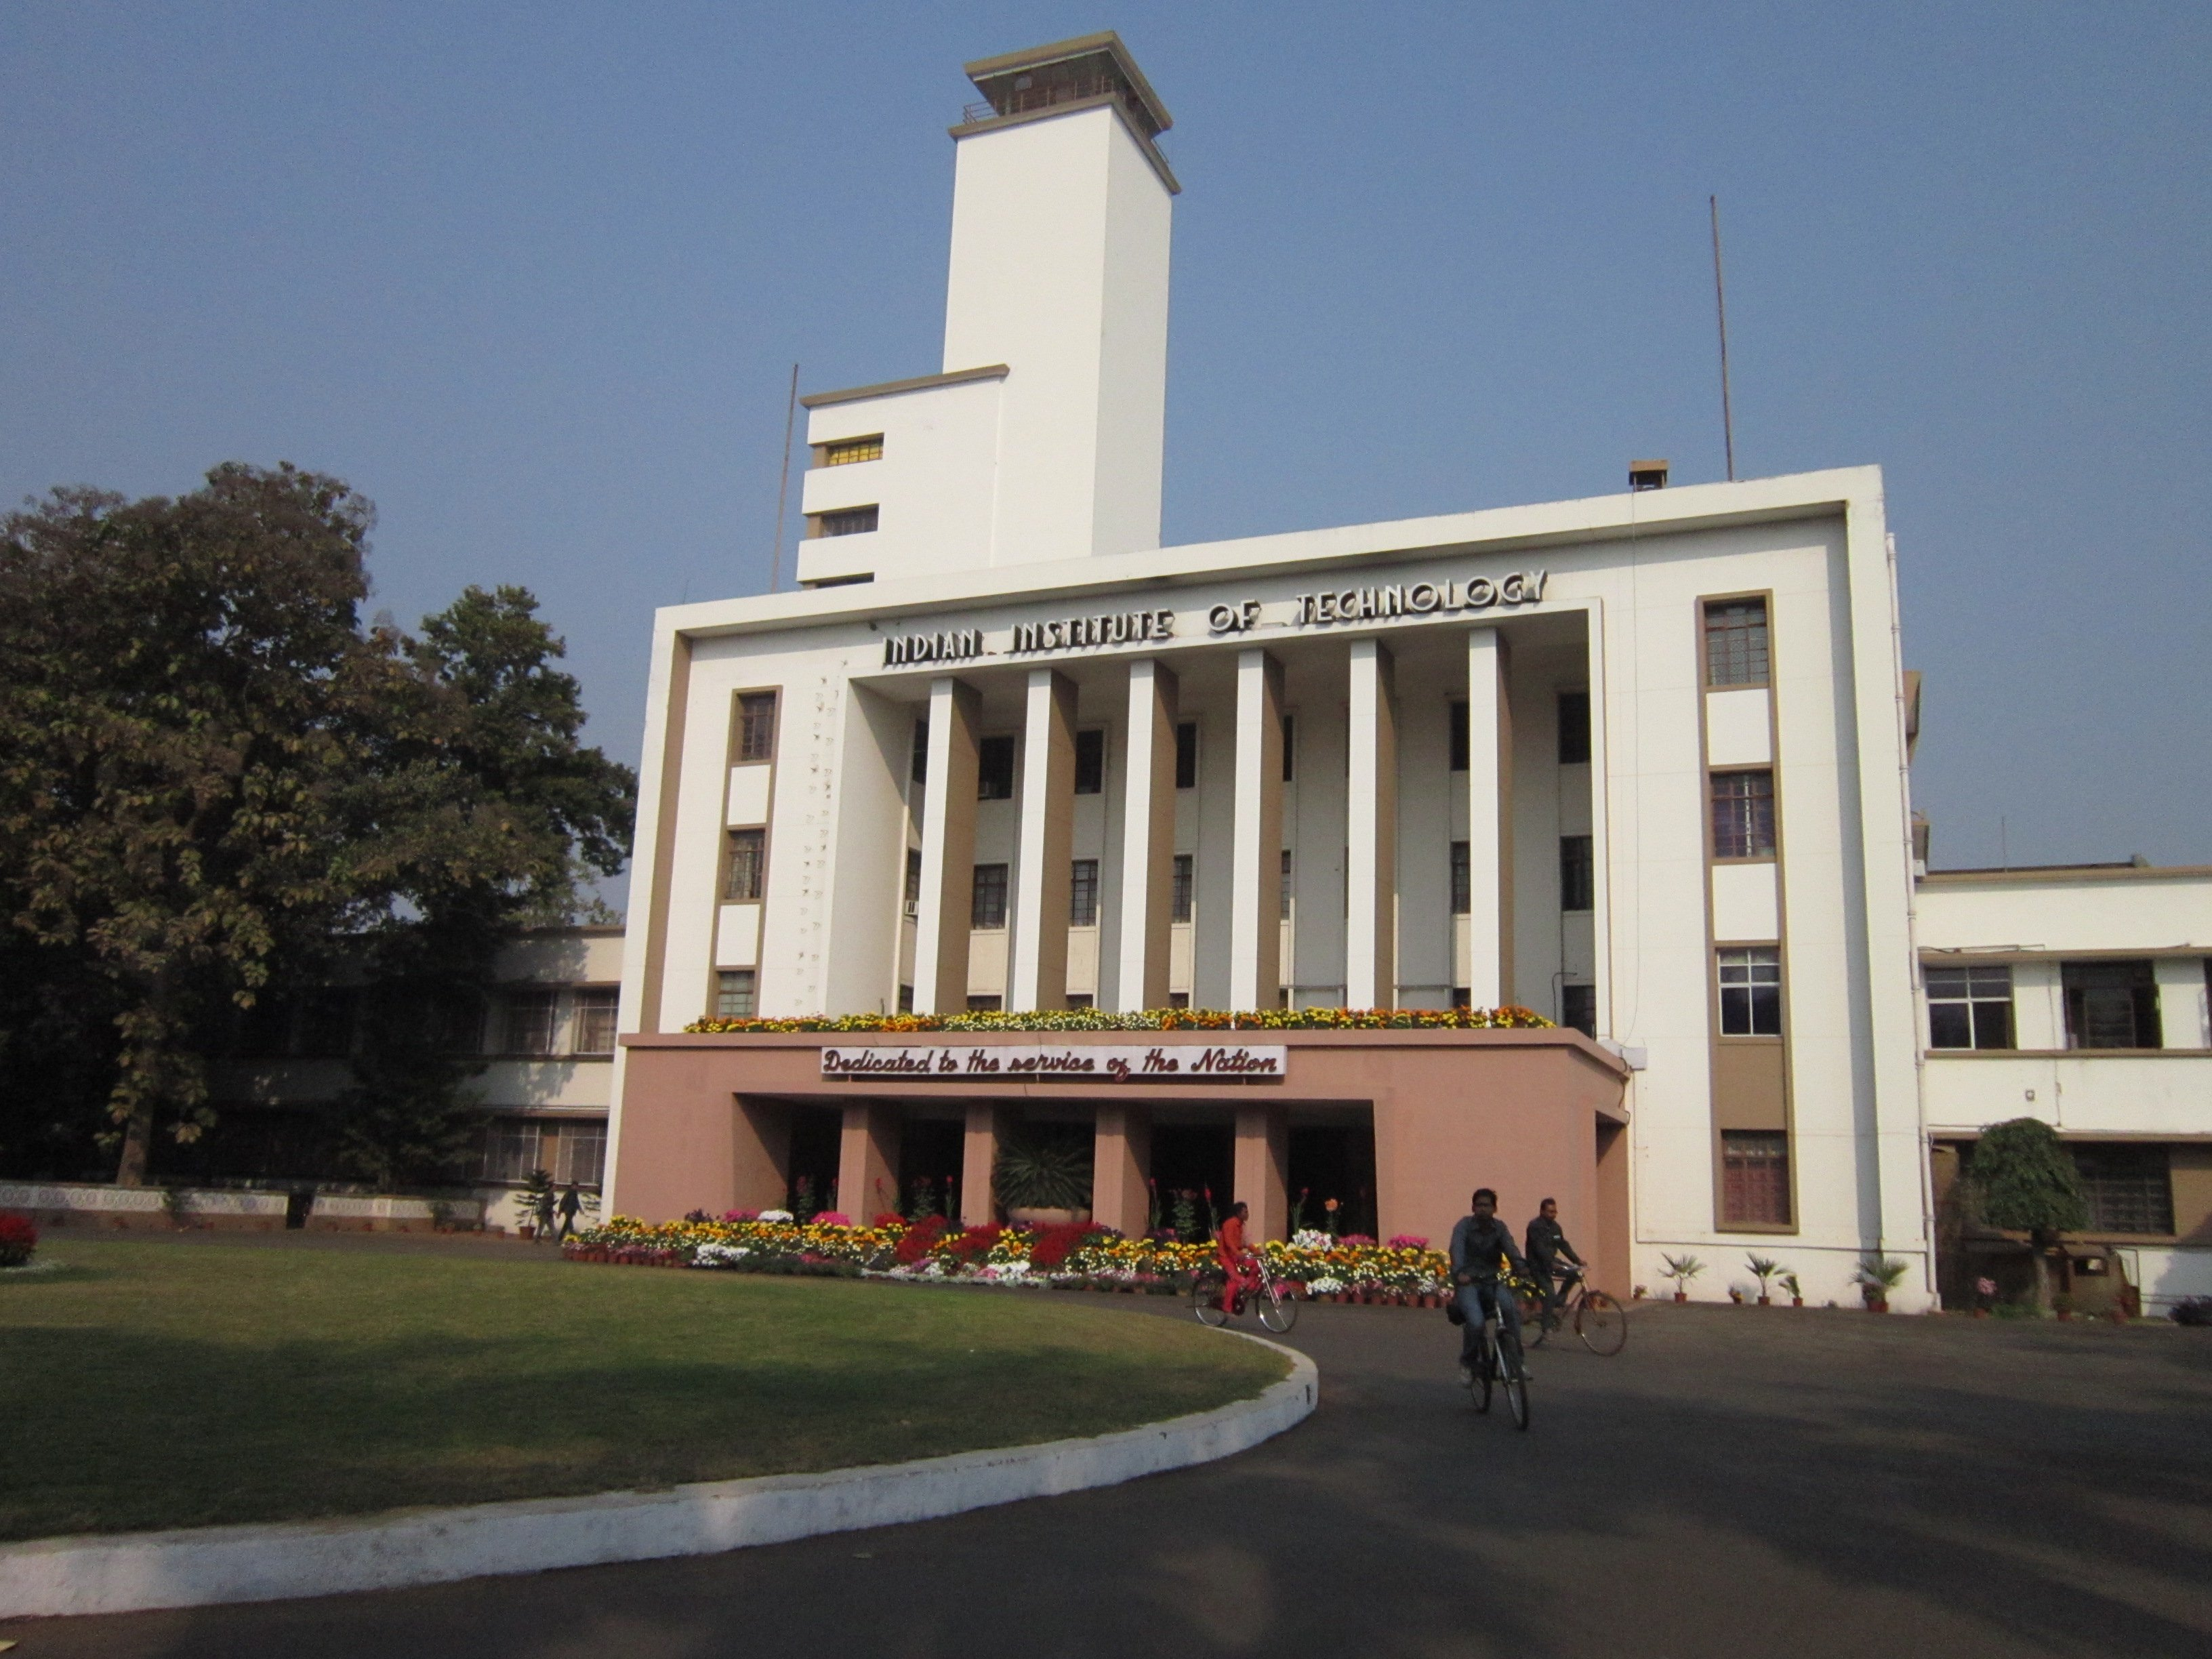 Indian institute of technology kharagpur - By Cutting Off Power For An Hour Every Day Iit Kharagpur Aims To Tackle Student Depression